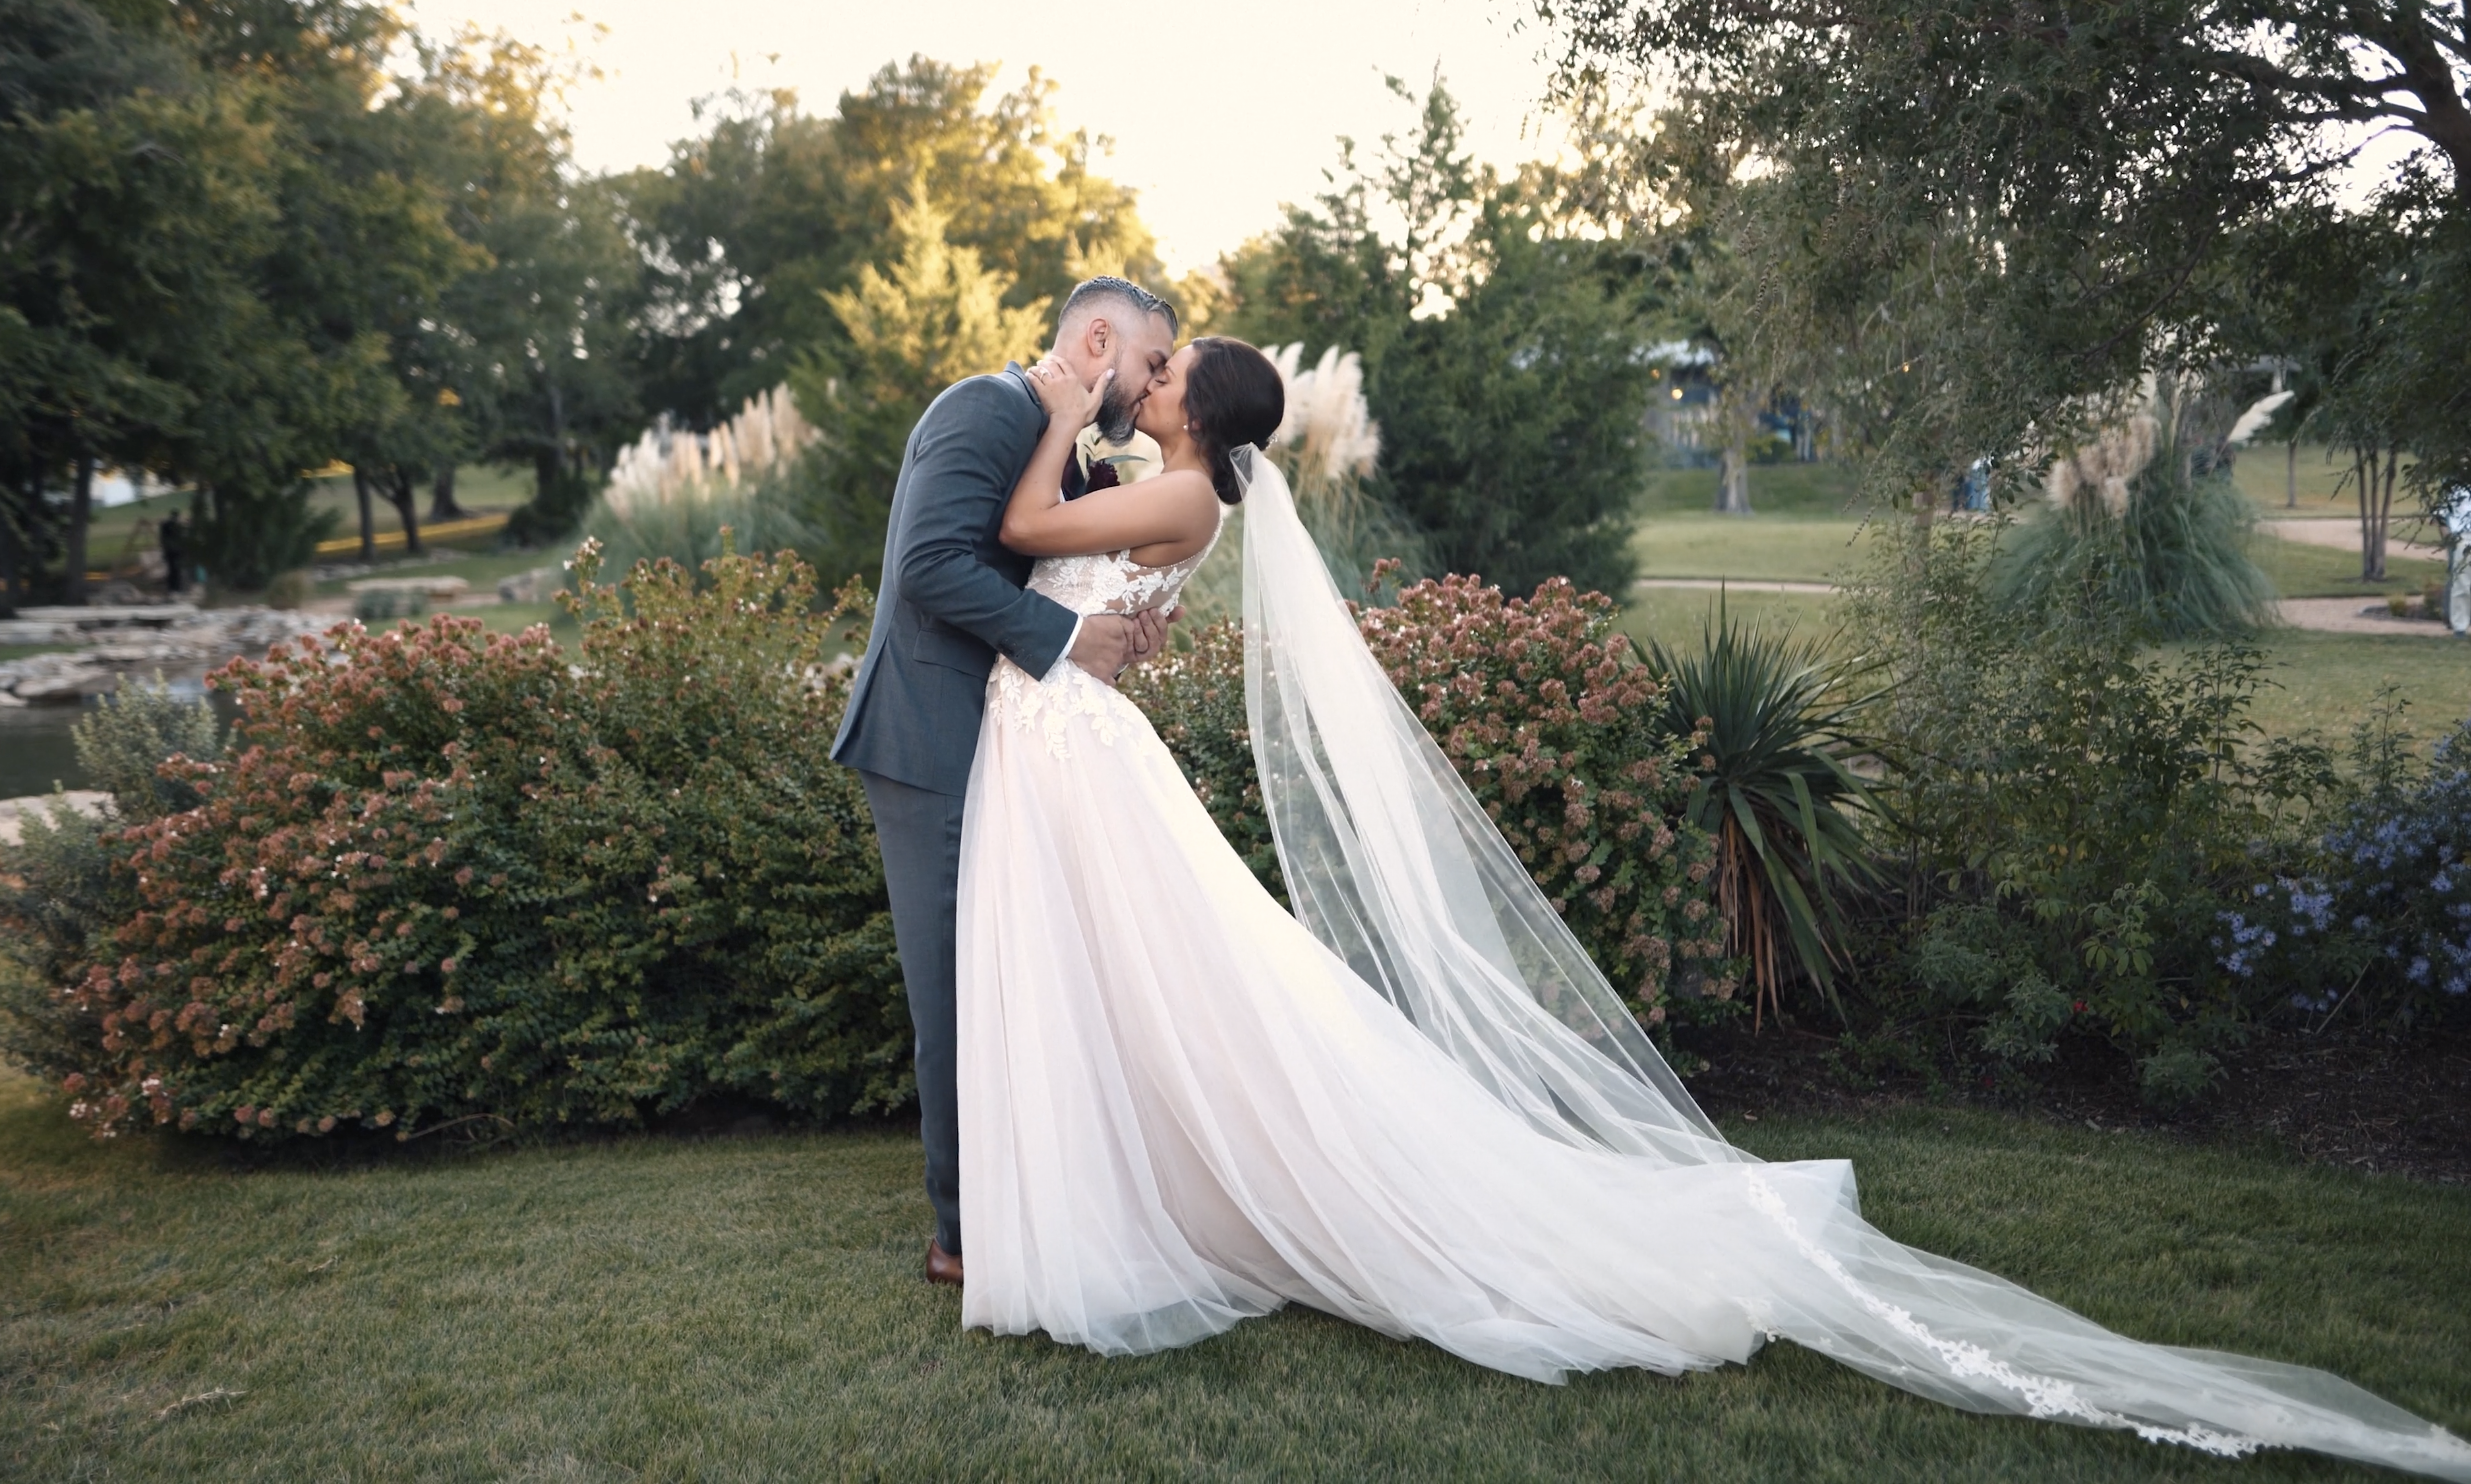 Paige + Aaron | Weatherford, Texas | The Brooks at Weatherford